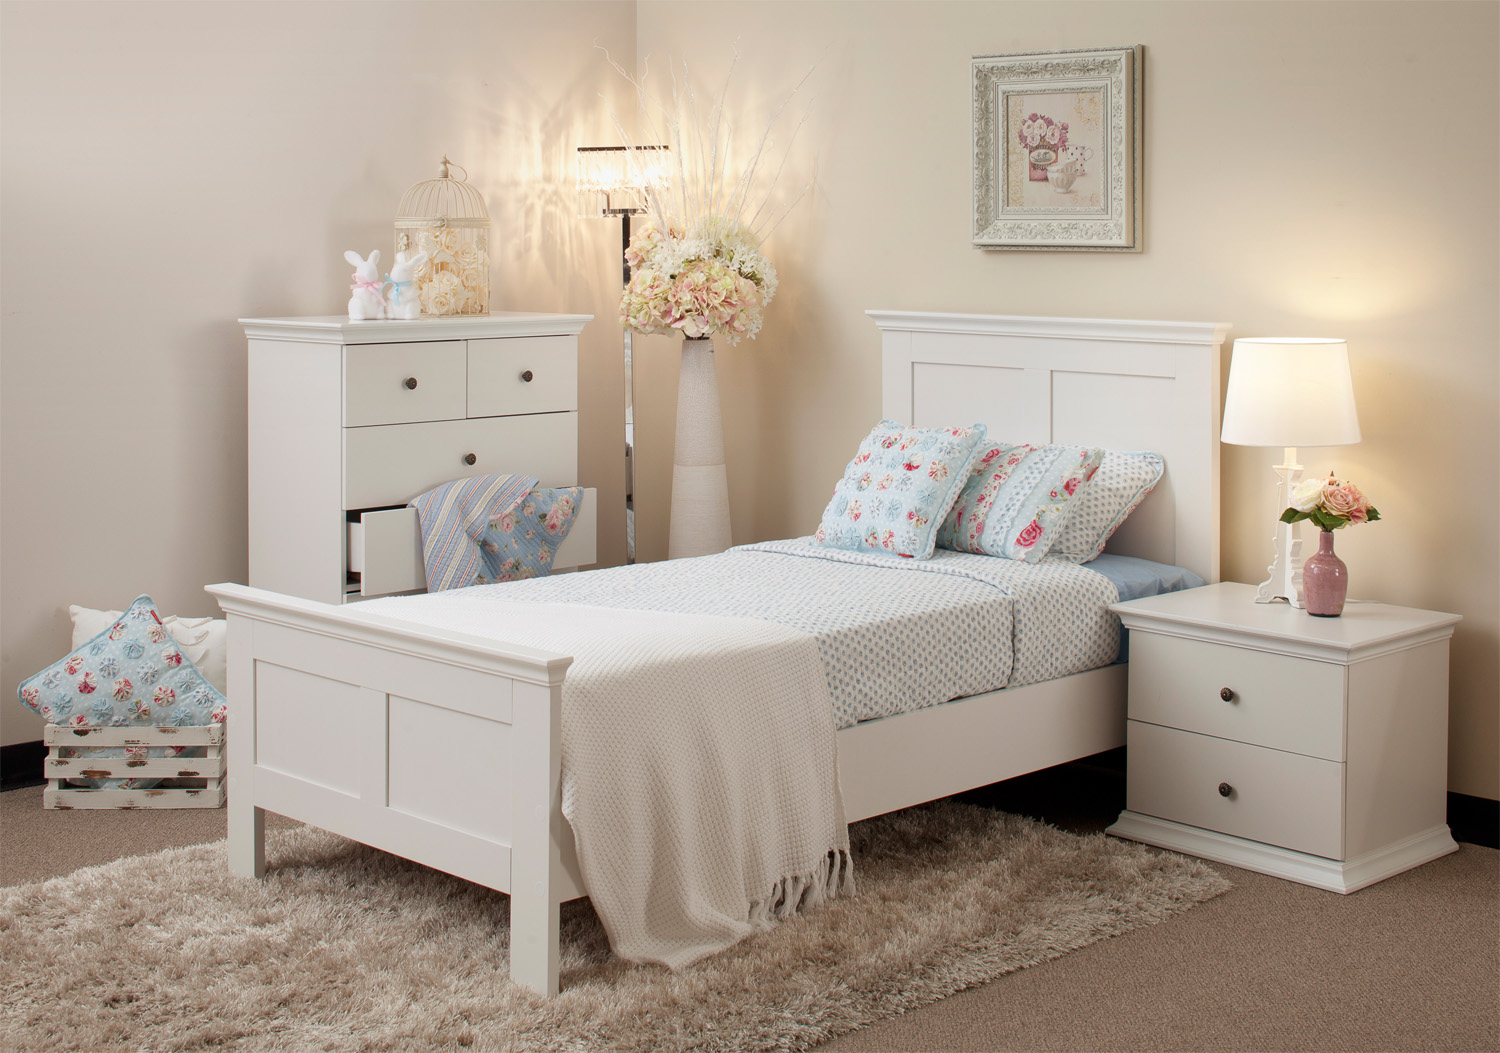 white bedroom furniture design ideas. White Bedroom Design Idea Furniture Ideas